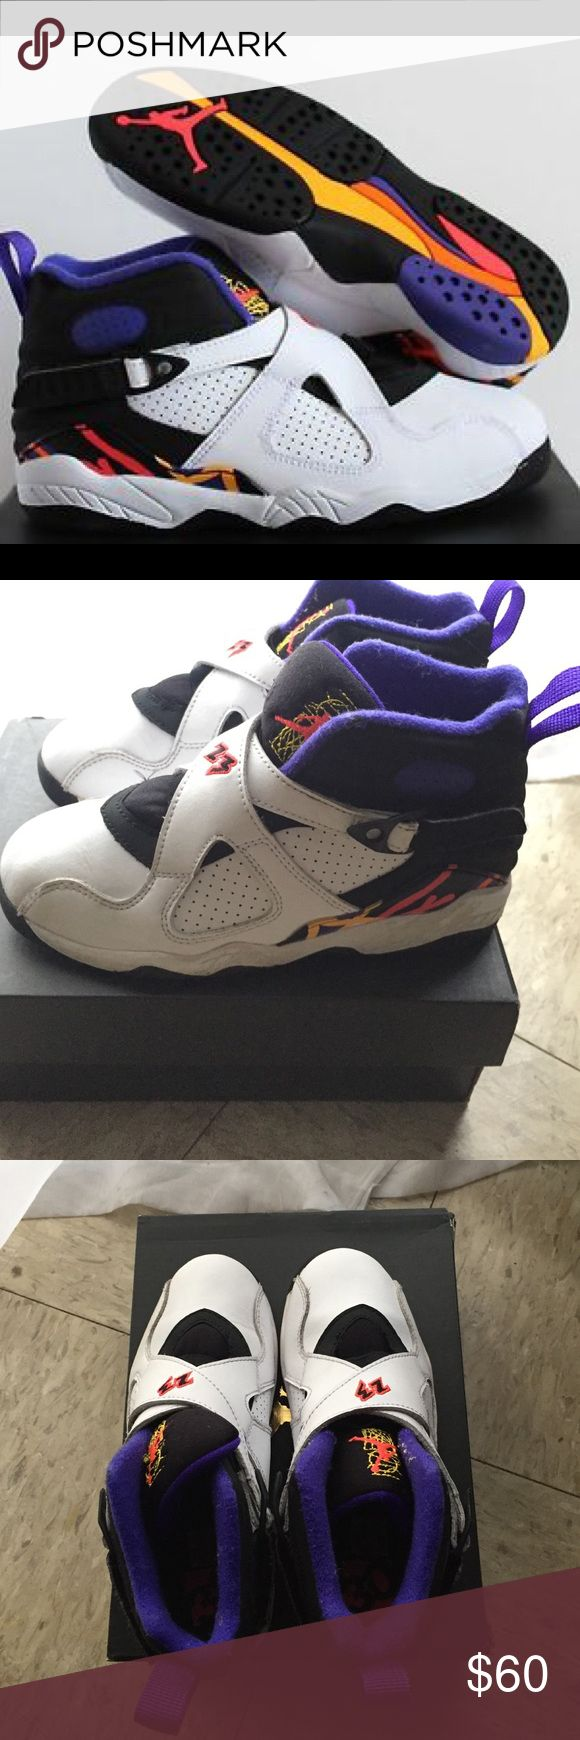 Nike Air Jordan Retro 8 kids size 13 In great condition. Kids size 13 jordan retro 8s white purple black orange and yellow. Can be for boys or girls Jordan Shoes Sneakers